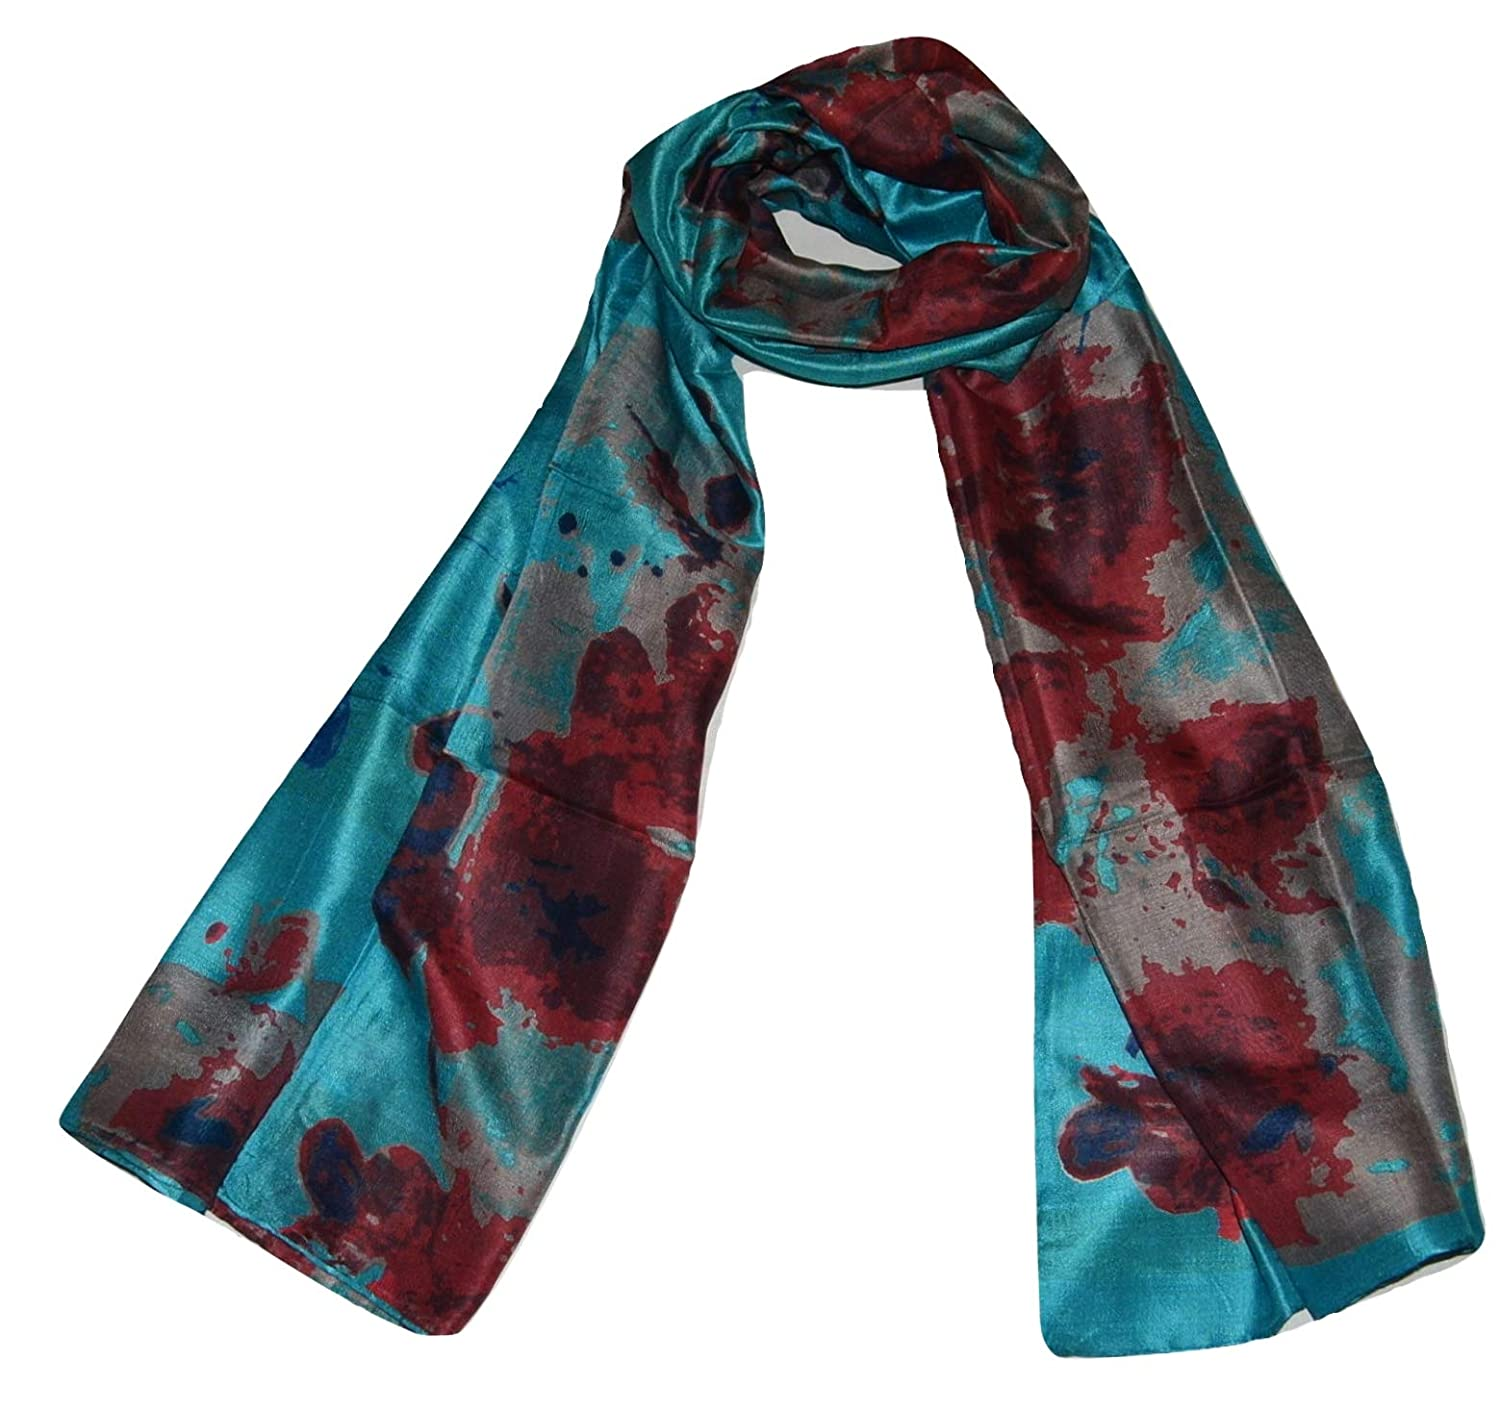 Turquoise Handcrafted 100% Pure Mulberry Silk, Floral Print, Scarf Stole.